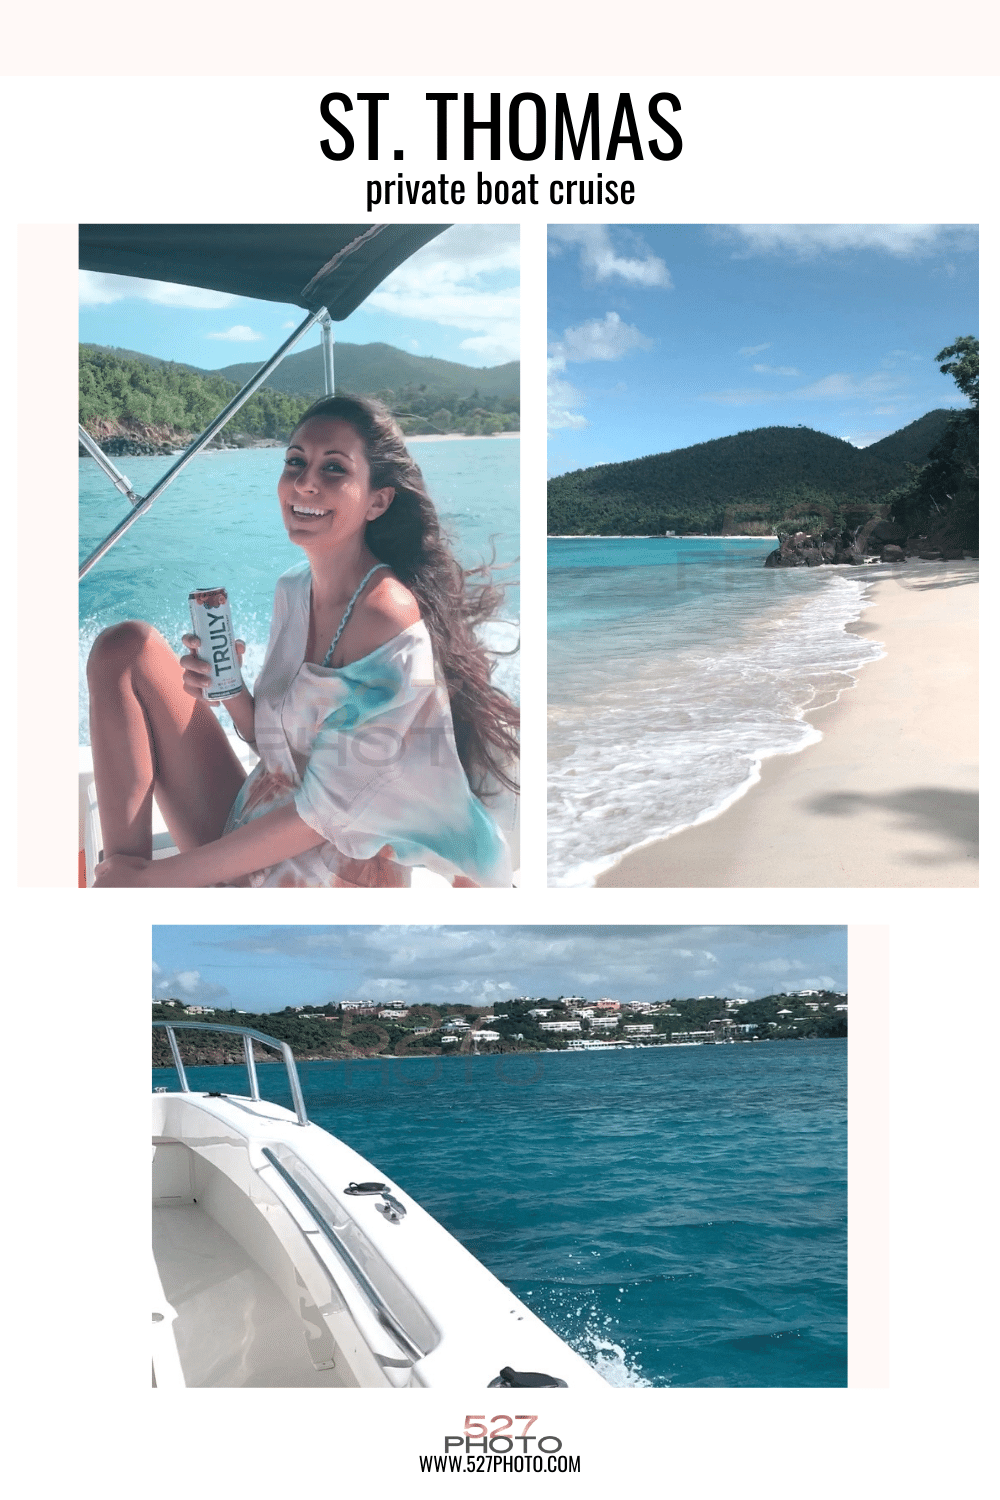 Cool excursions from St. Thomas